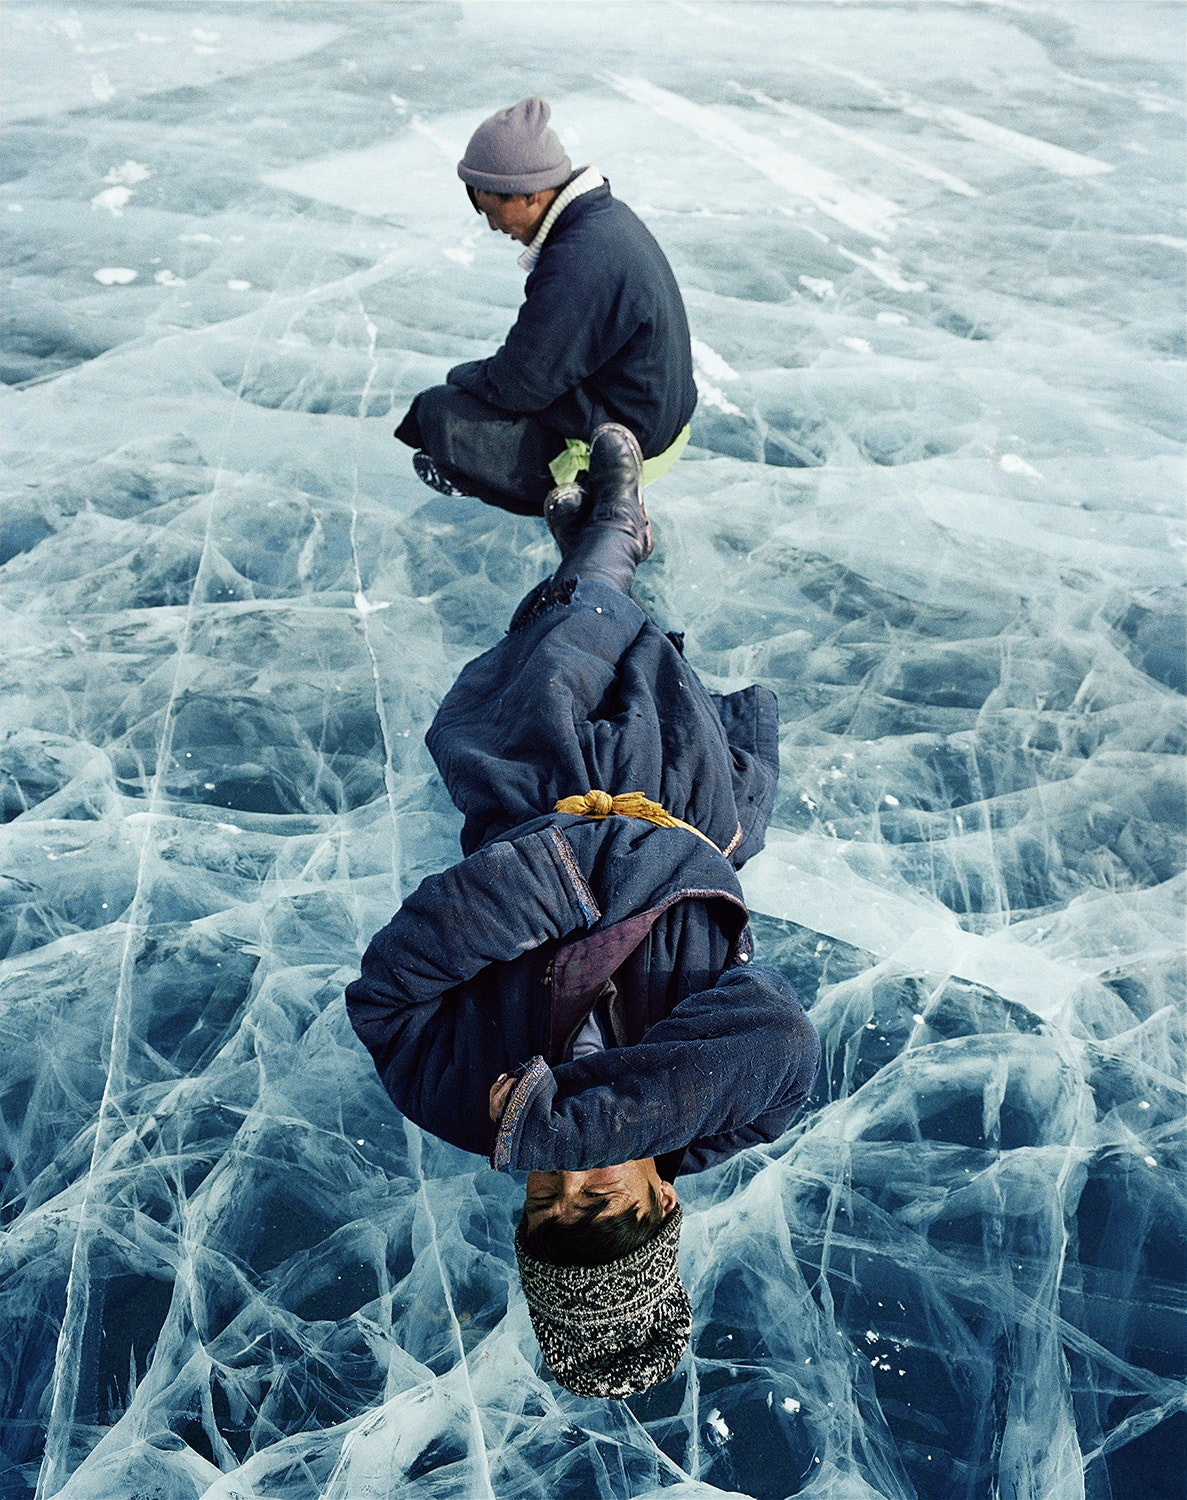 Lake Khövsgöl, located near Mongolia's northwestern border with Russia, holds almost 70 percent of Mongolia's fresh water. During winter, the lake's surface freezes over completely.